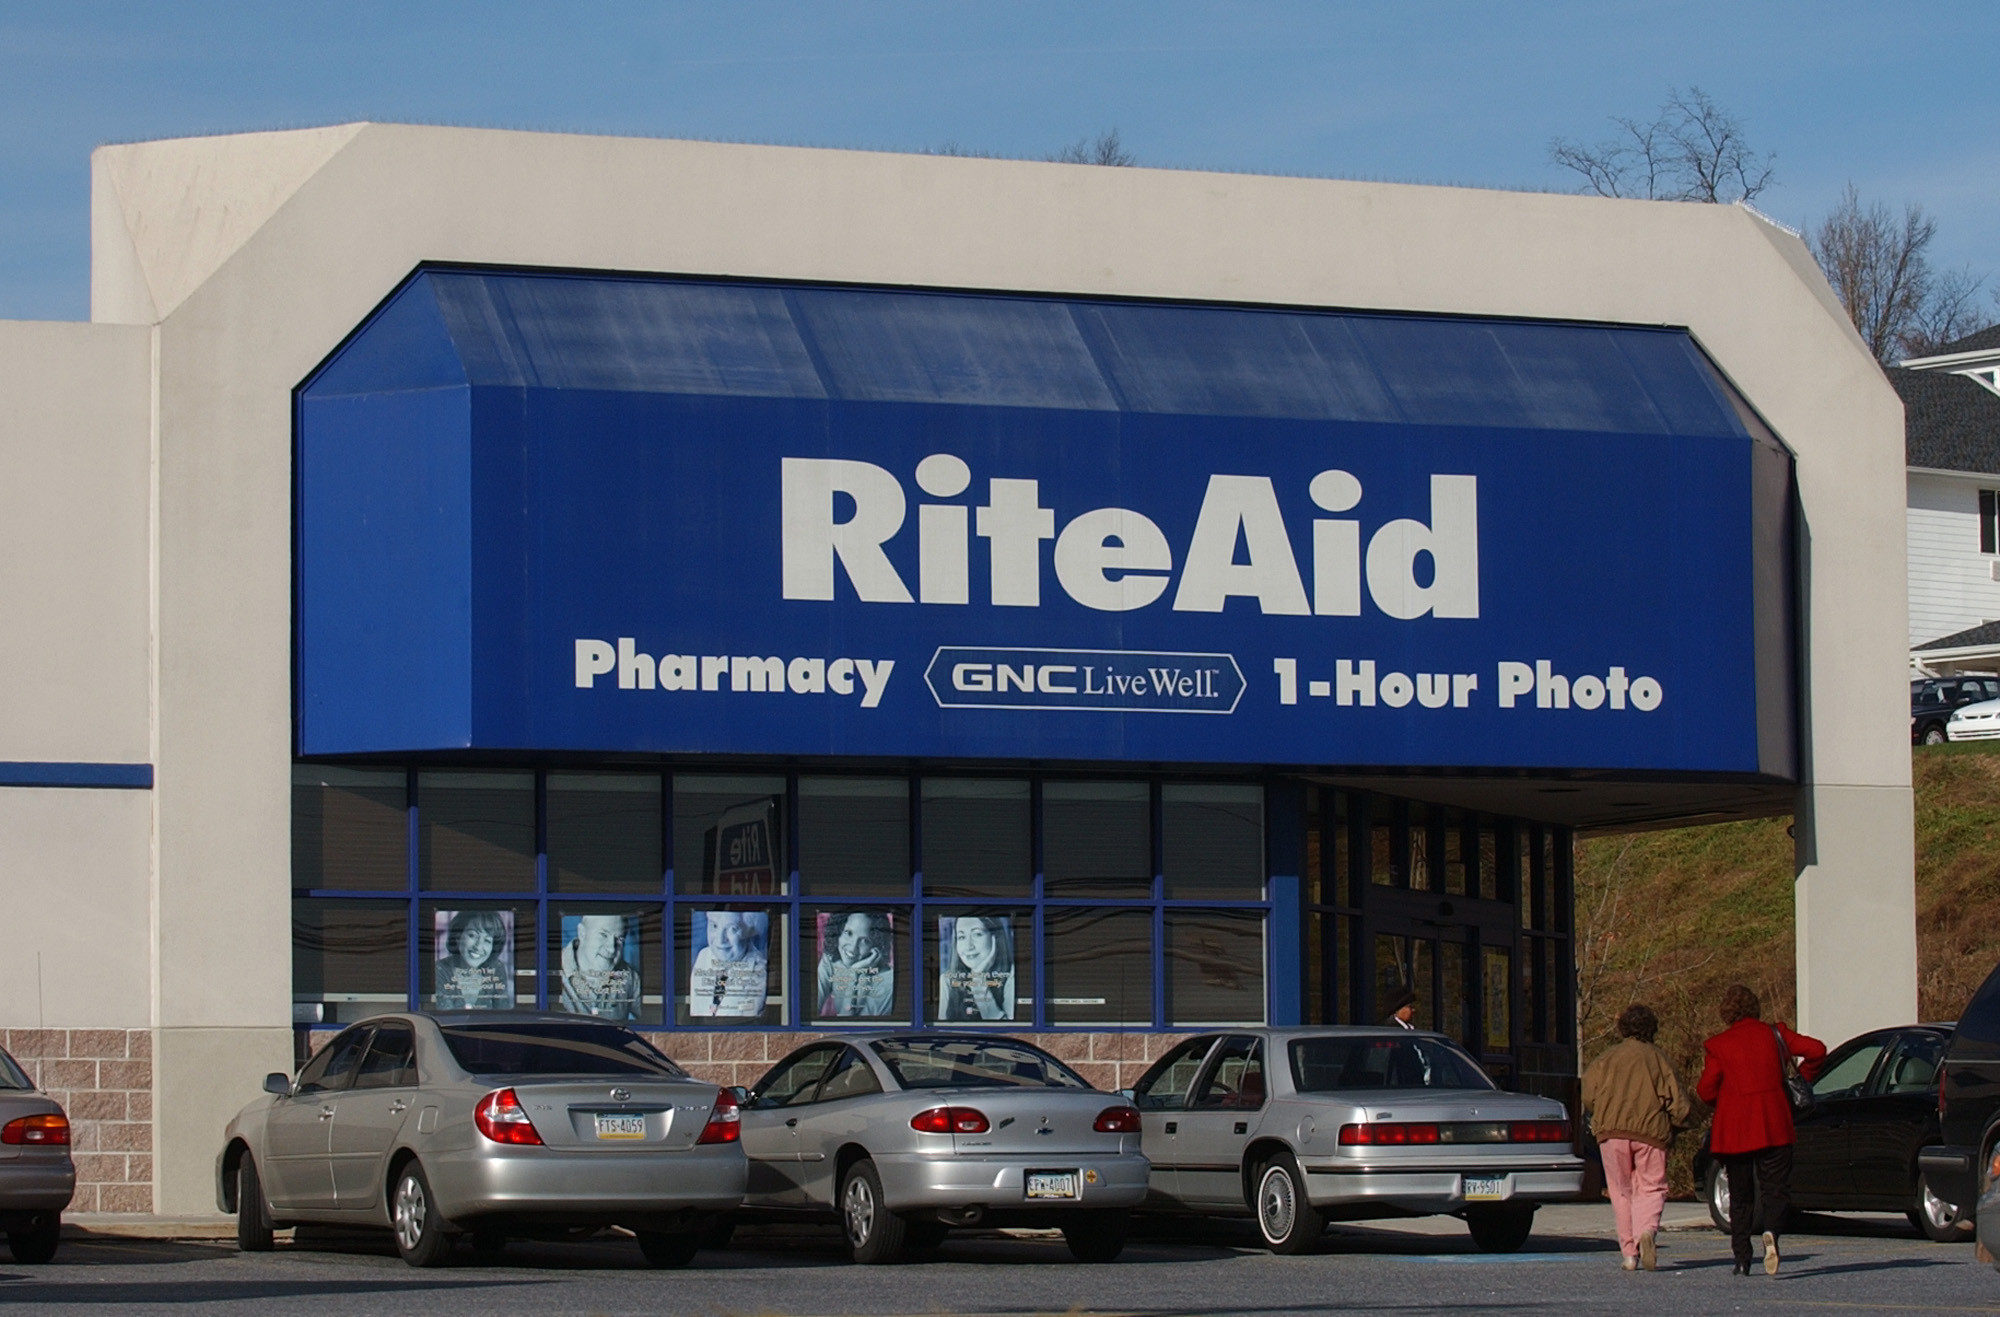 rite aid We are deeply saddened by the events that transpired this morning at the liberty support facility, which is part of rite aid's perryman distribution center in aberdeen, md local authorities have confirmed that there are multiple fatalities and casualties.